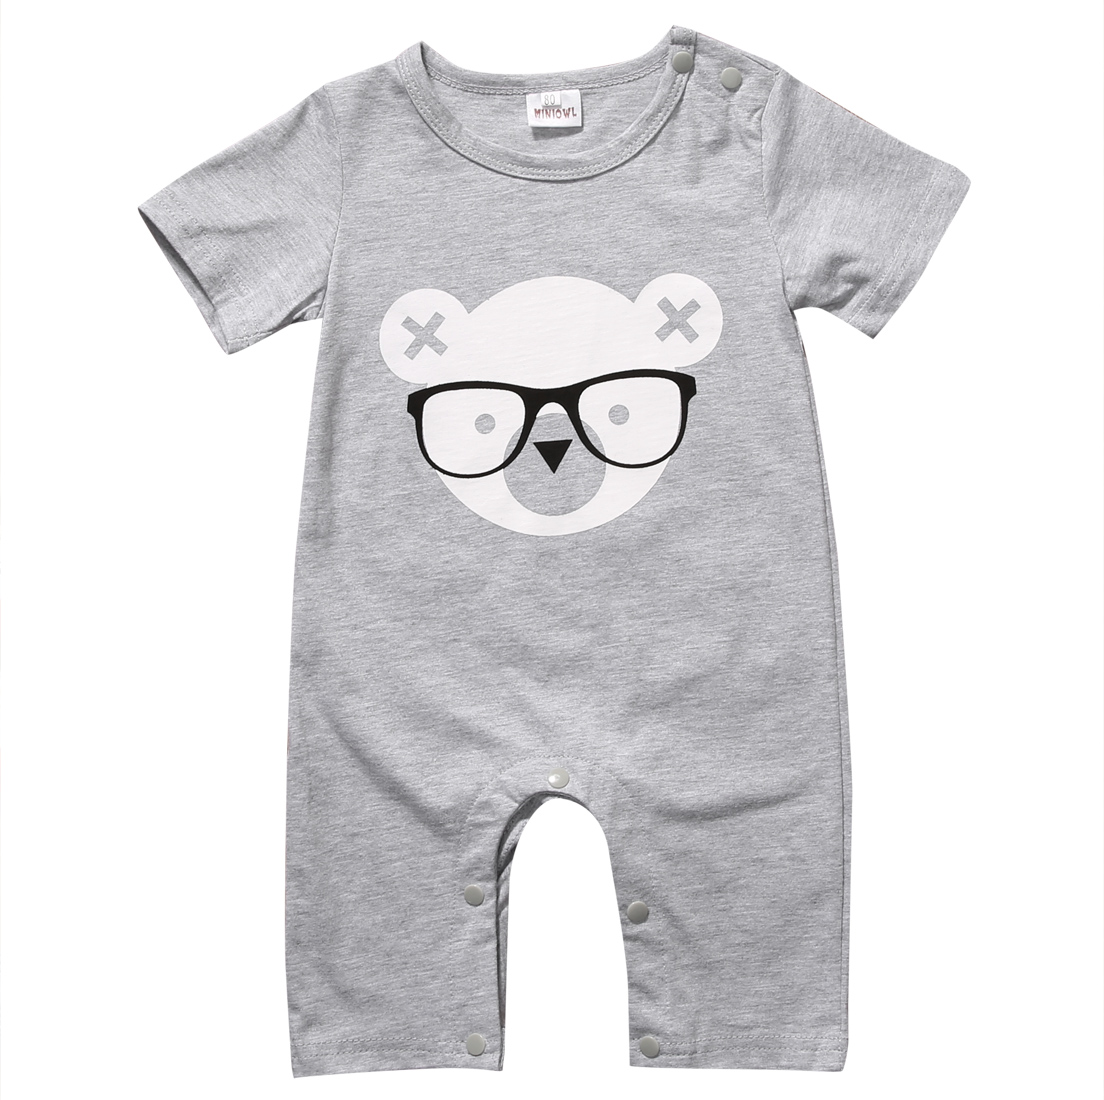 Newborn Infant Baby Boy Girl Bear Jumpsuit Rompers 2017 Summer Baby Clothes Baby Boys Rompers Girls Rompers Outfits Cotton cotton newborn infant baby boys girls clothes rompers long sleeve cotton jumpsuit clothing baby boy outfits